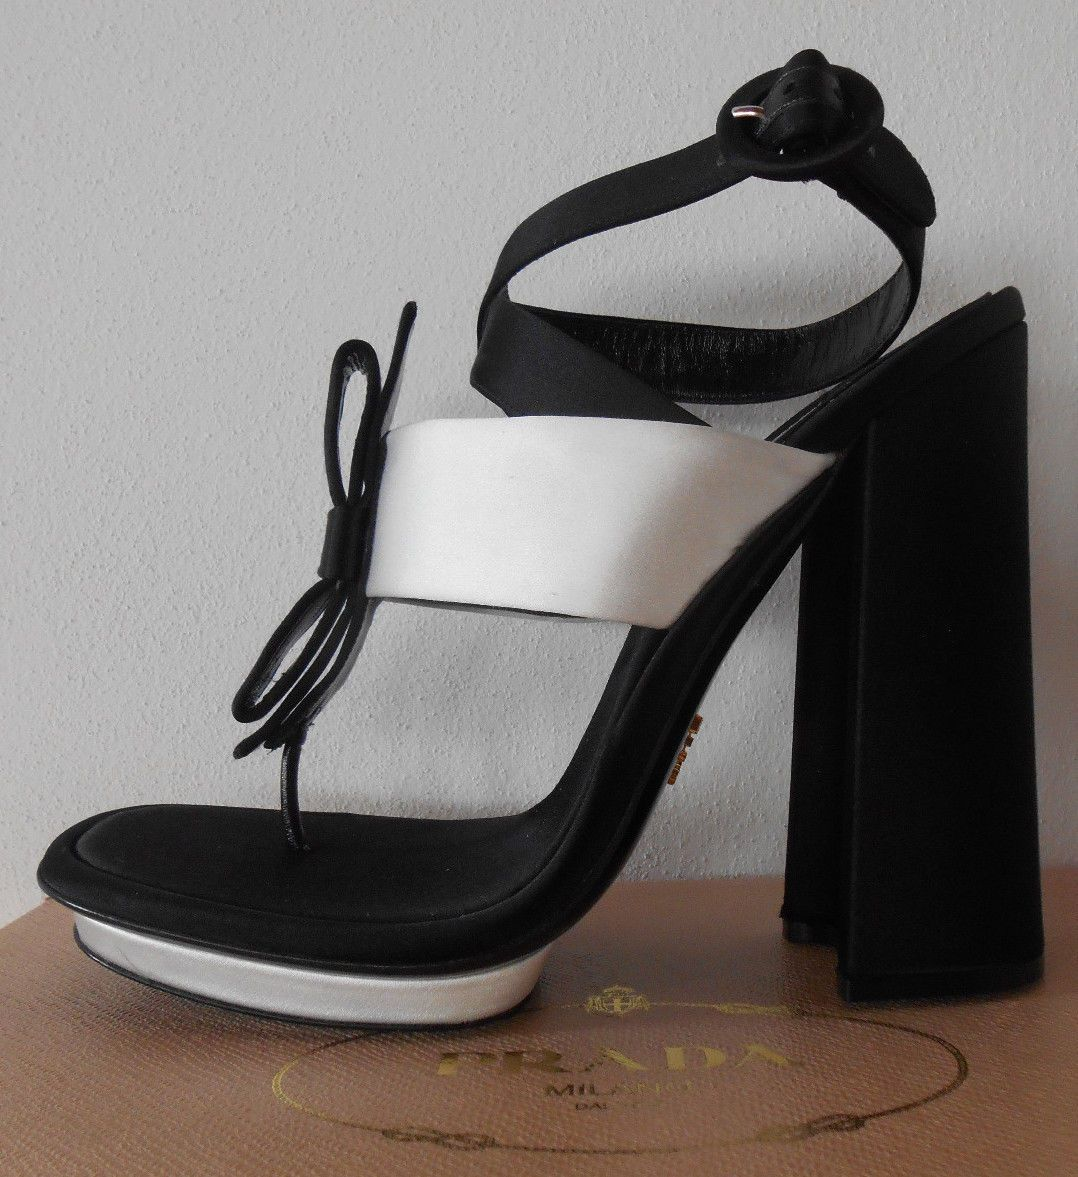 Prada Shoes Spring 2013 Collection Authentic Prada Women Black Satin 40 | #Prada